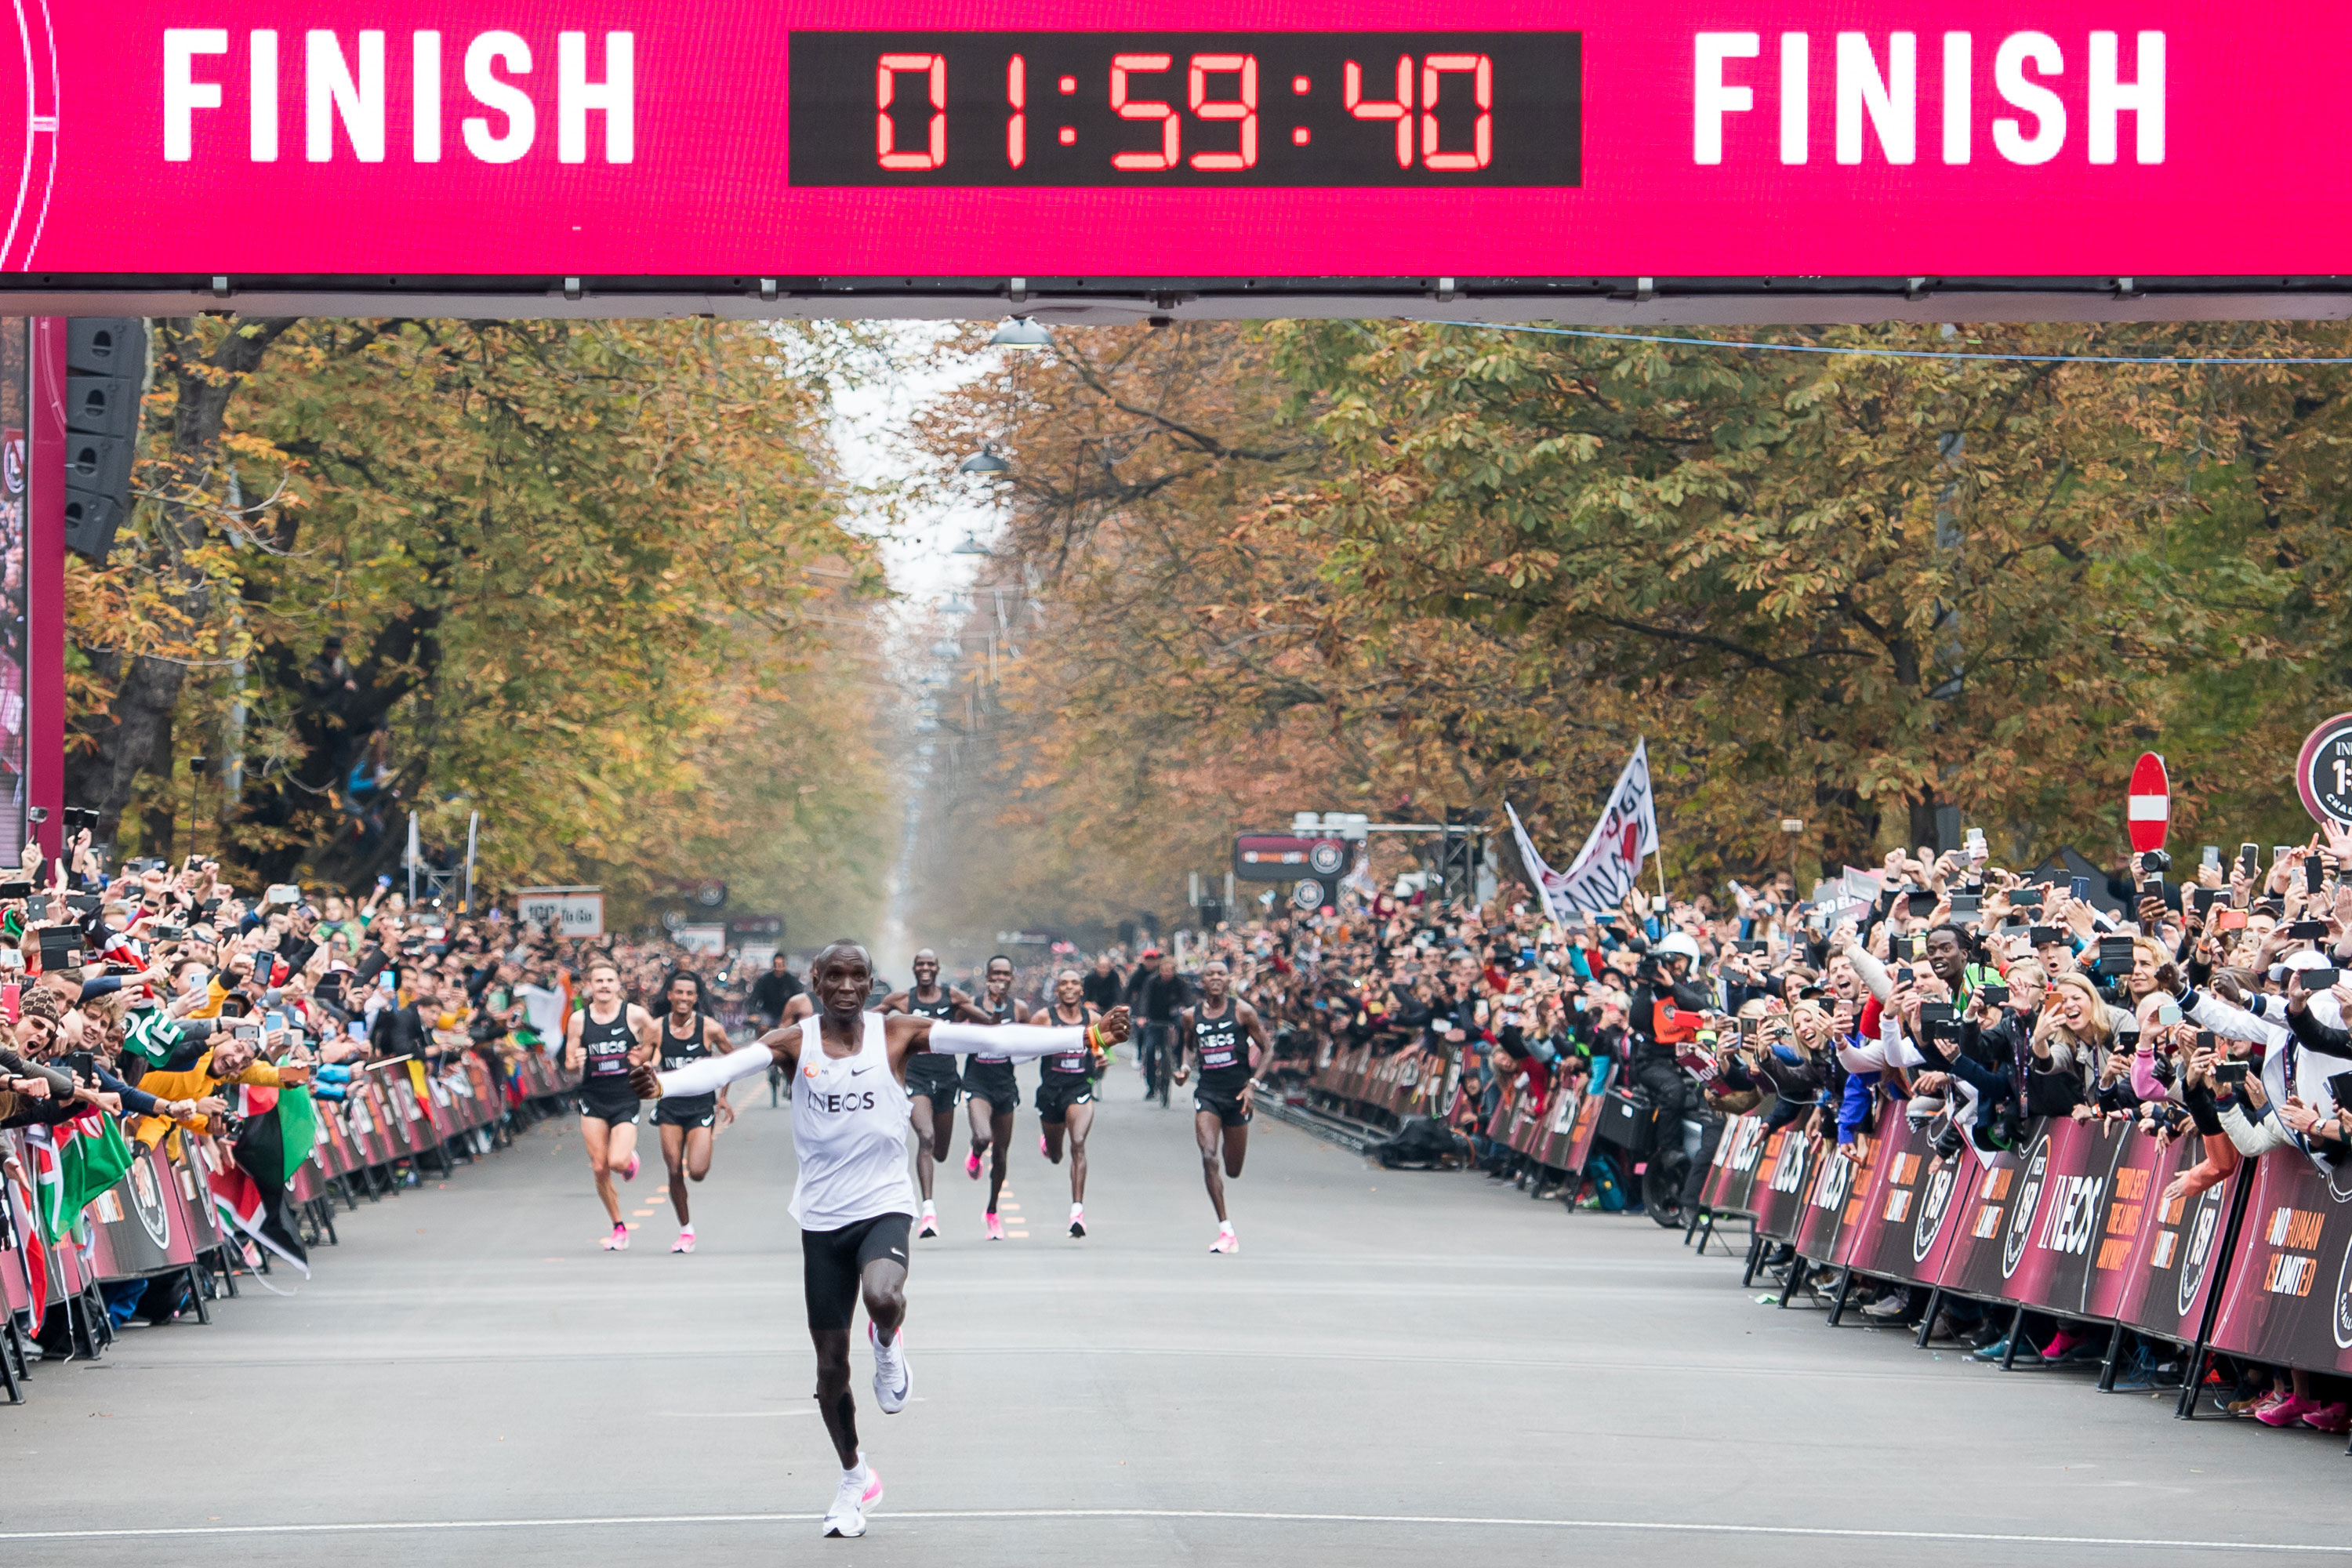 Marathon Records Topple, Double-Amputee Ironman: Adventure News of the Week | GearJunkie